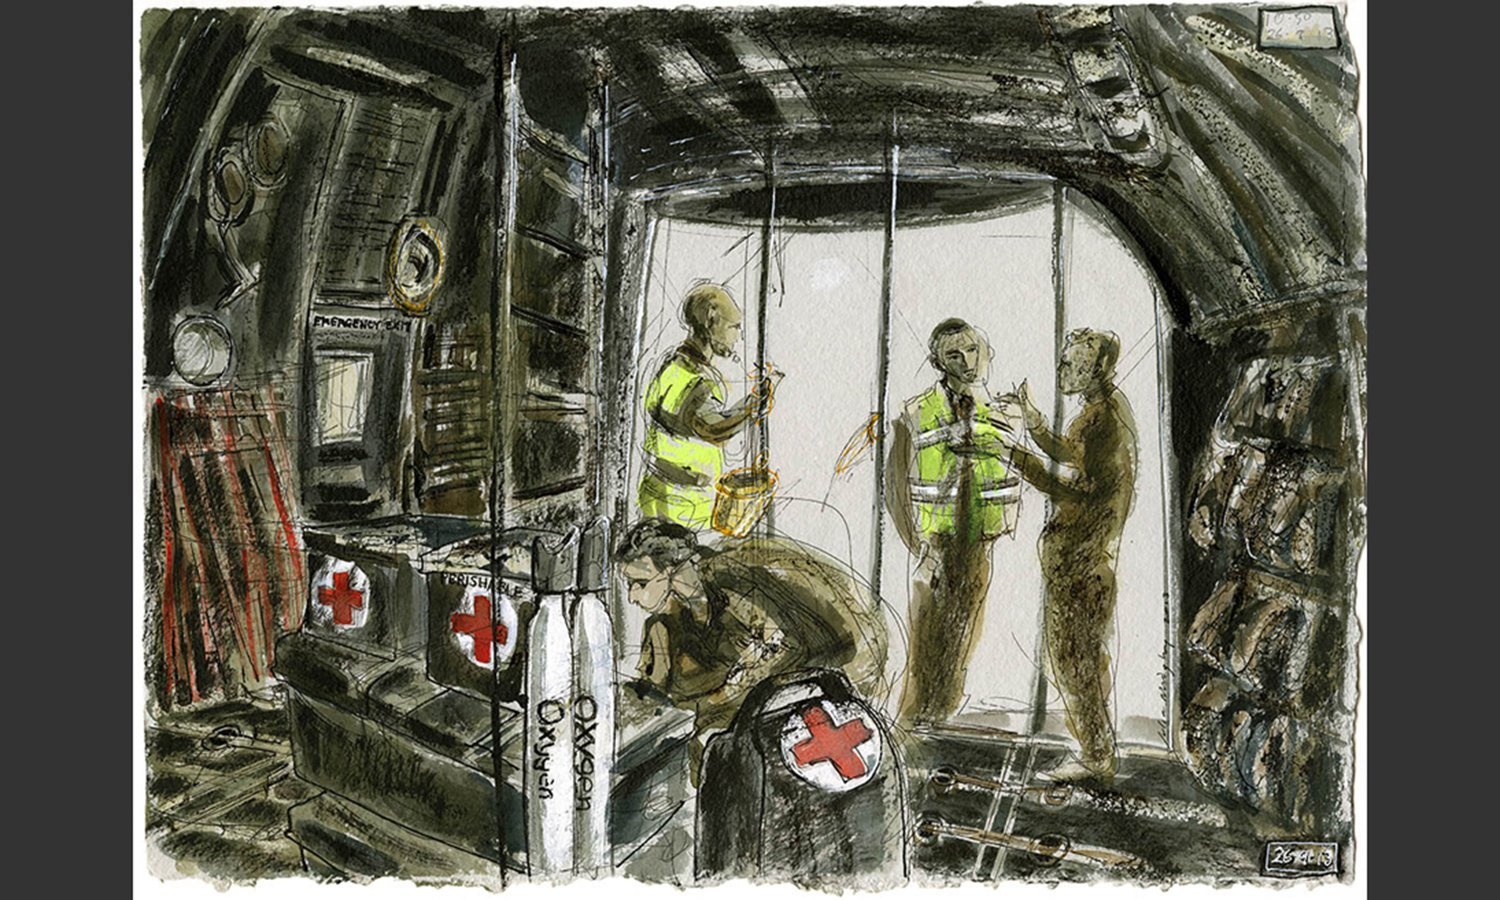 'Inside The Hercules' by Julia Midgley